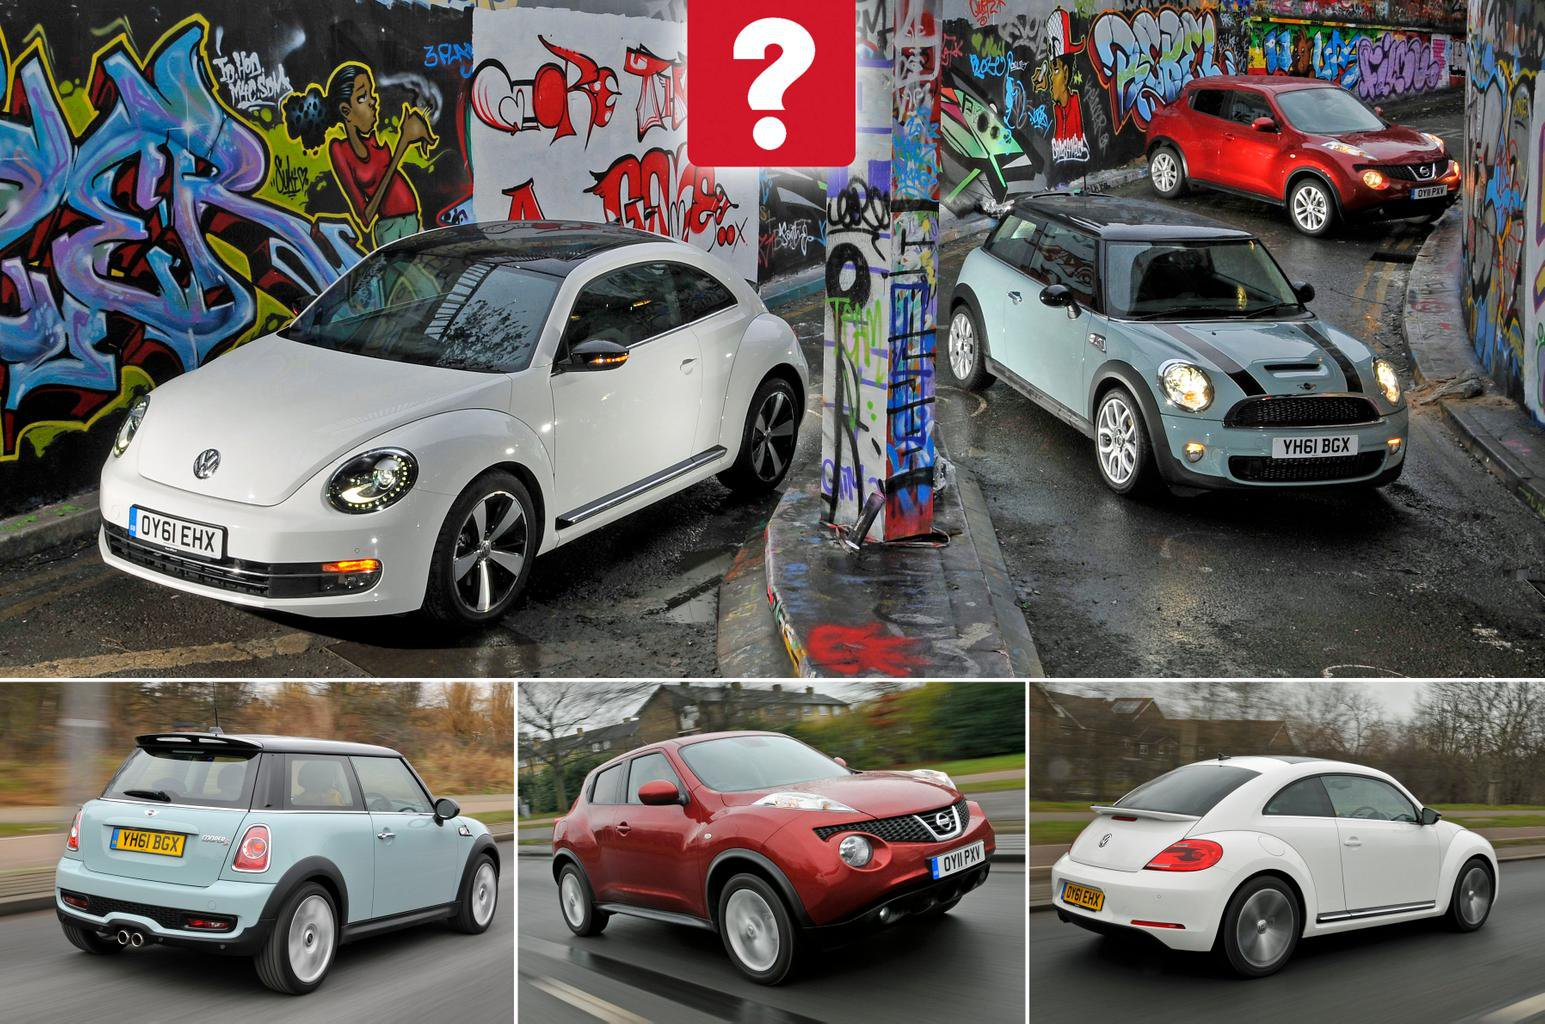 Used Mini Cooper S Vs Nissan Juke Volkswagen Beetle